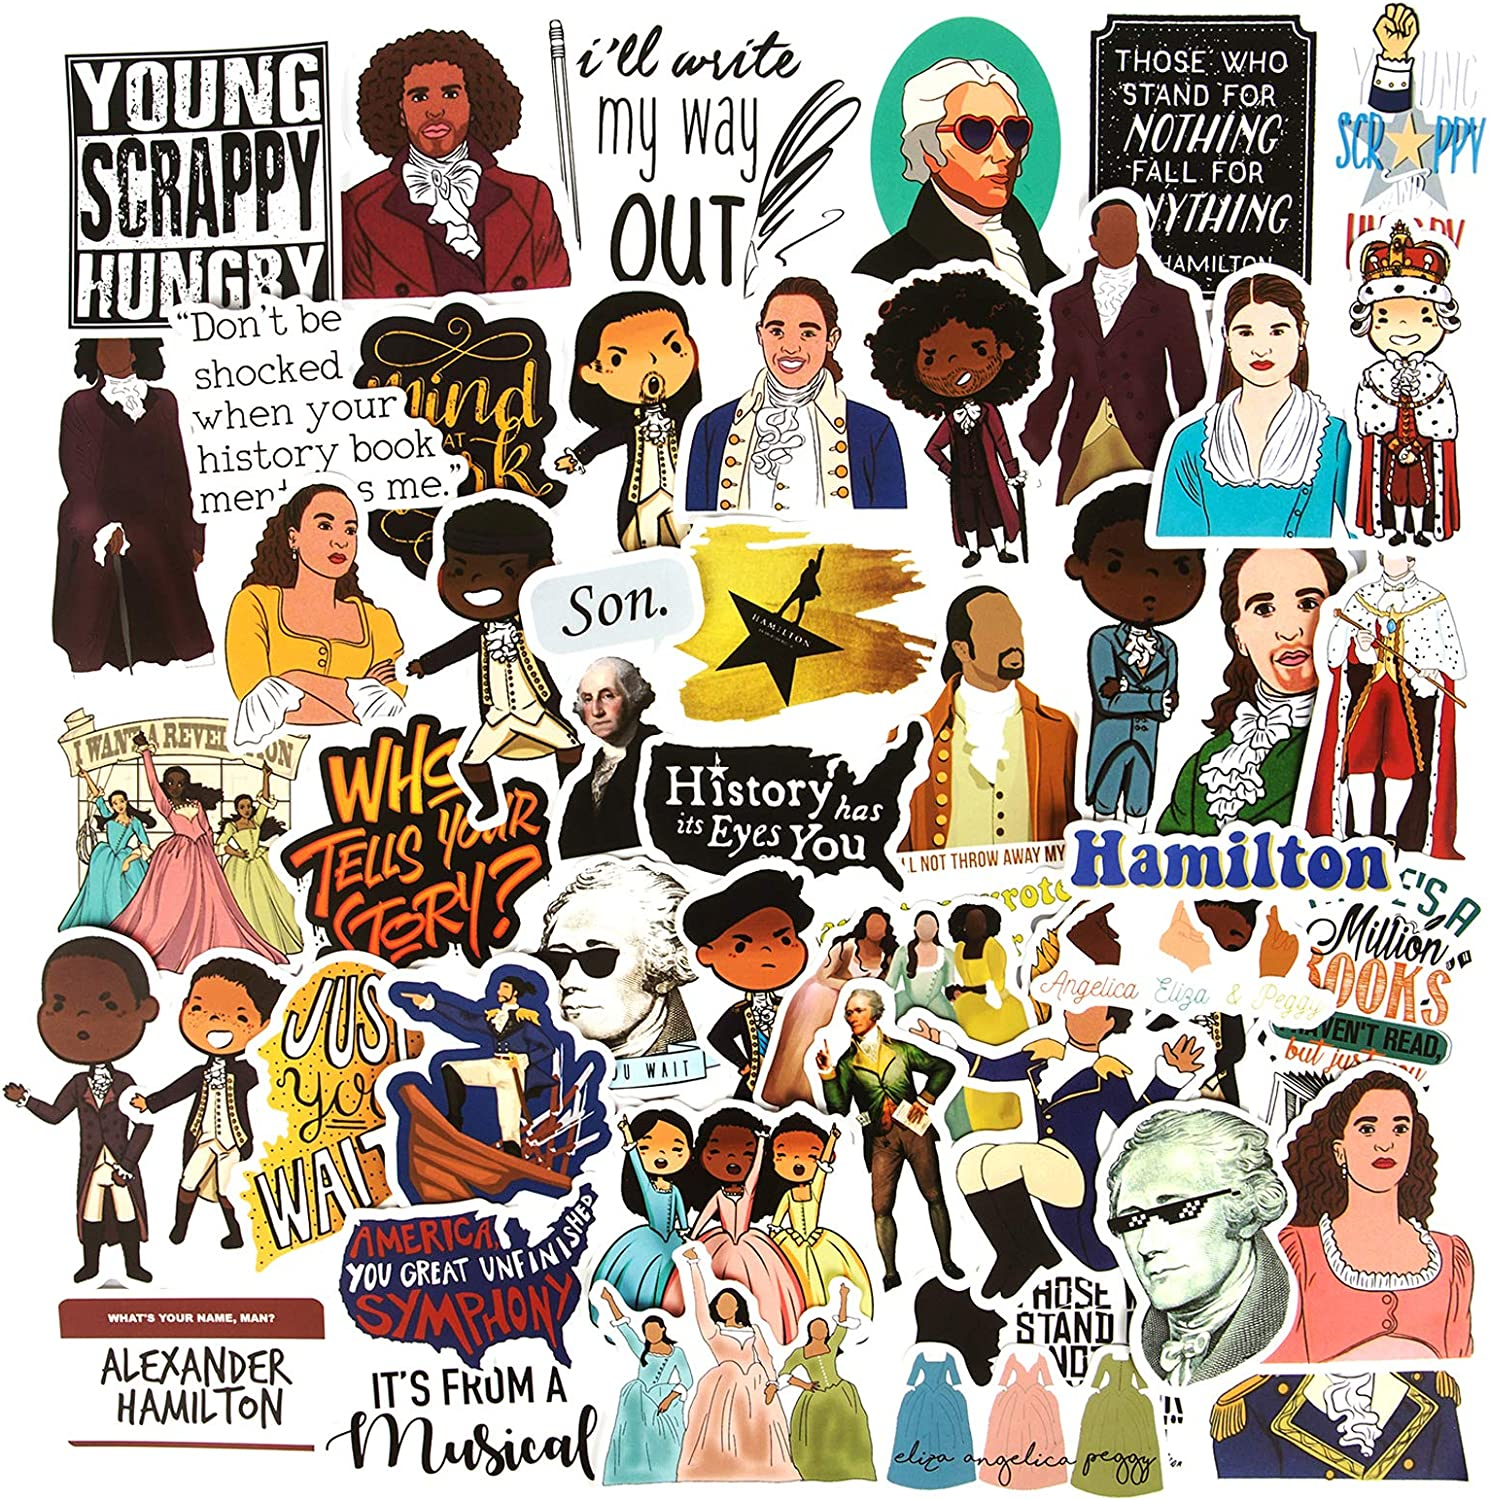 Hamilton Musical Stickers, 50PCS Waterproof Vinyl Stickers Stylish Laptop Stickers Artistic Water Bottle Stickers Luggage Bicycle Computer Skateboard Stickers for Teens Decal